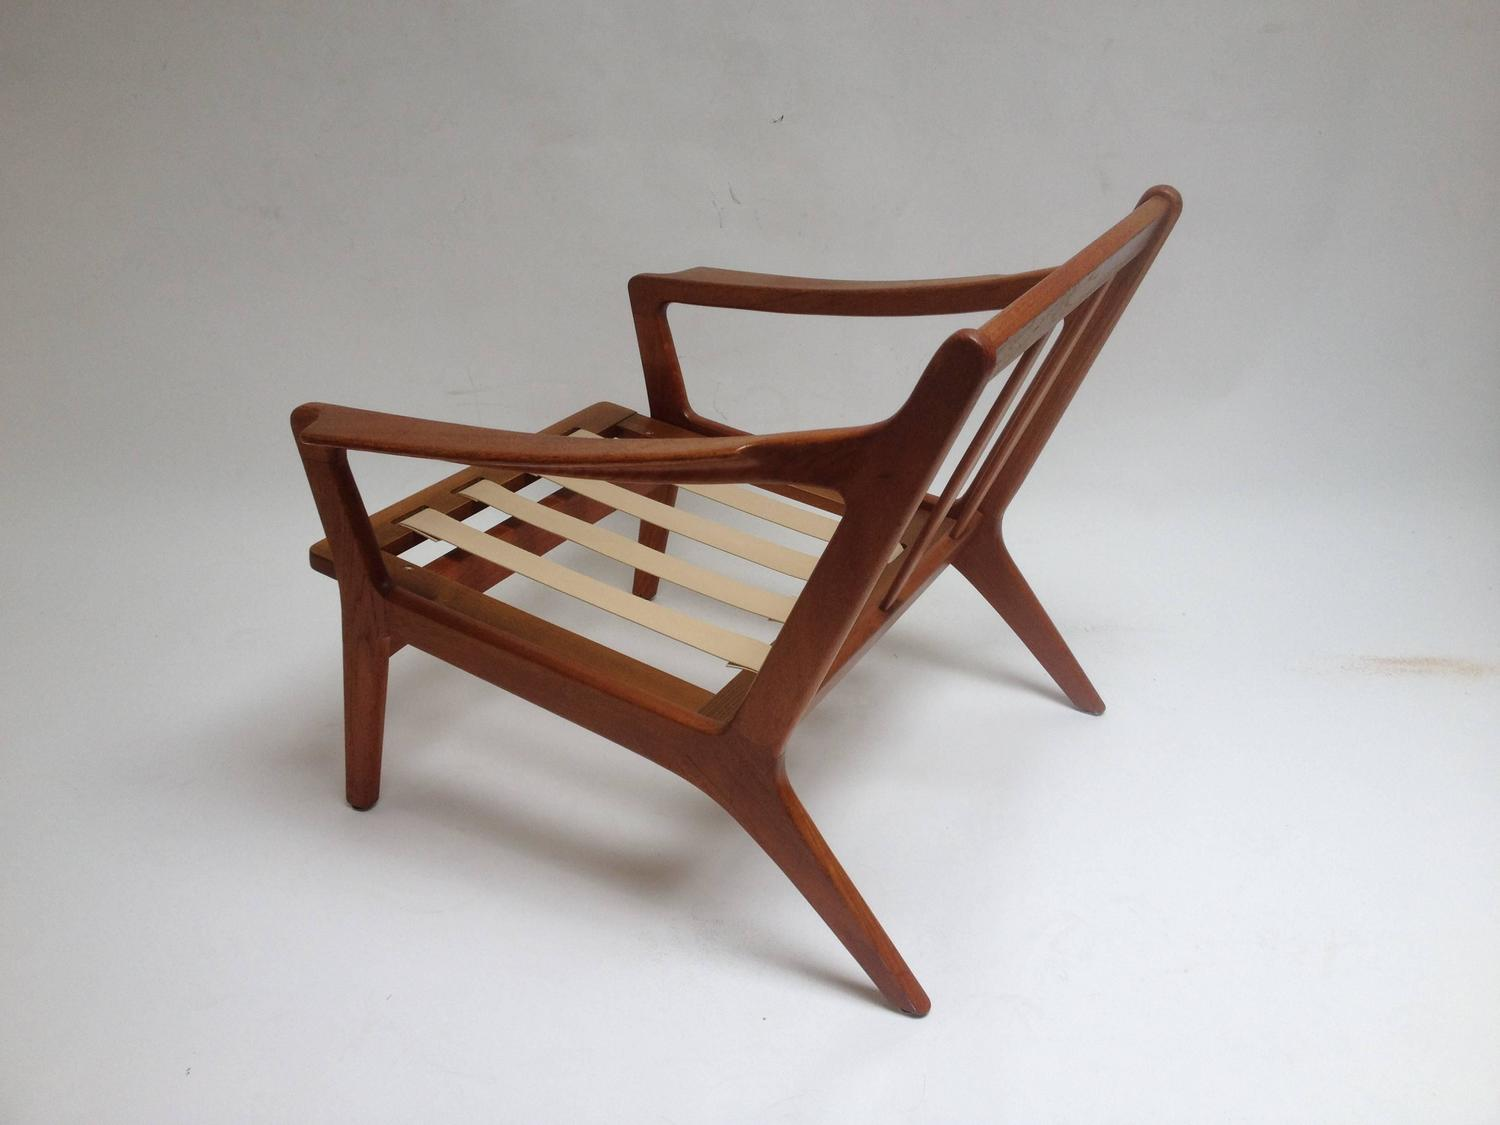 teak folding chairs canada sure fit wing chair slipcovers mid century modern danish easy designed by arne